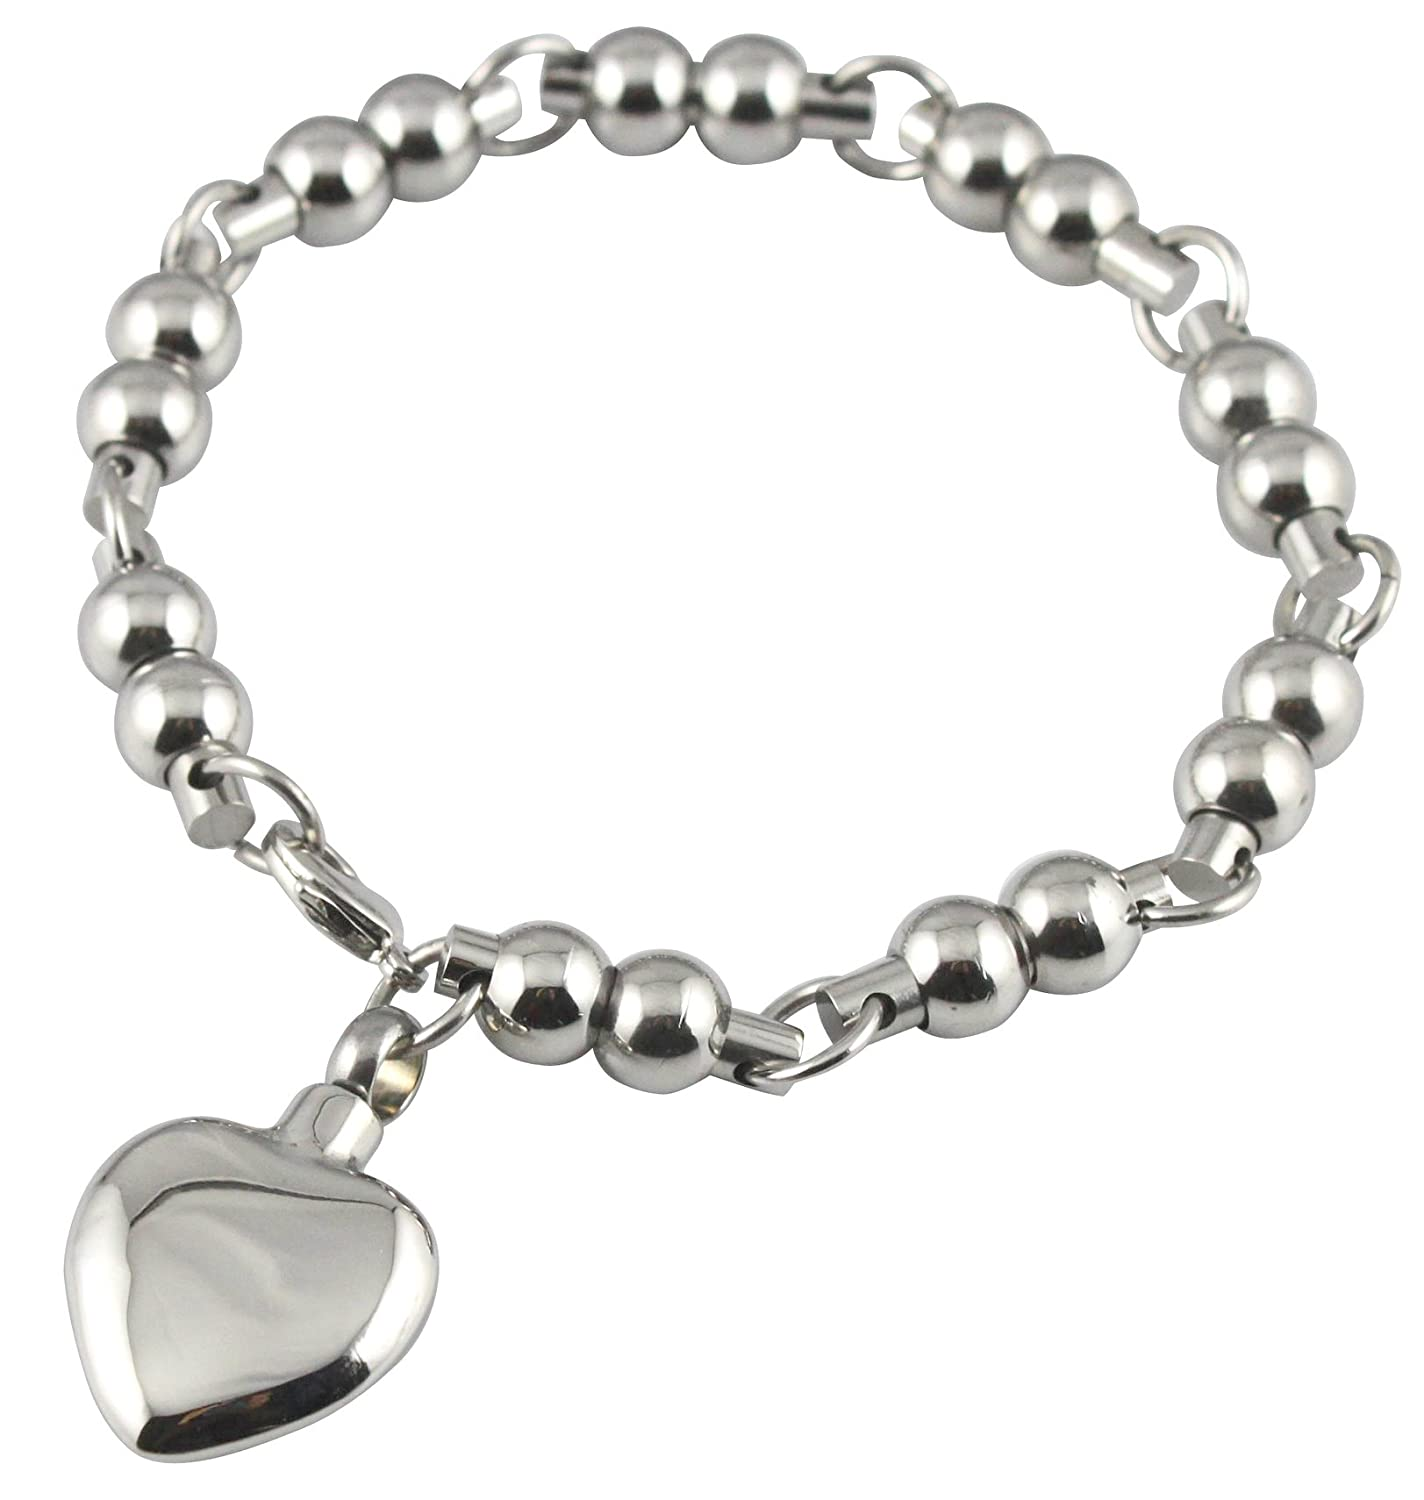 Cremation Jewelry Ashes Bracelet Chelsea Design 2